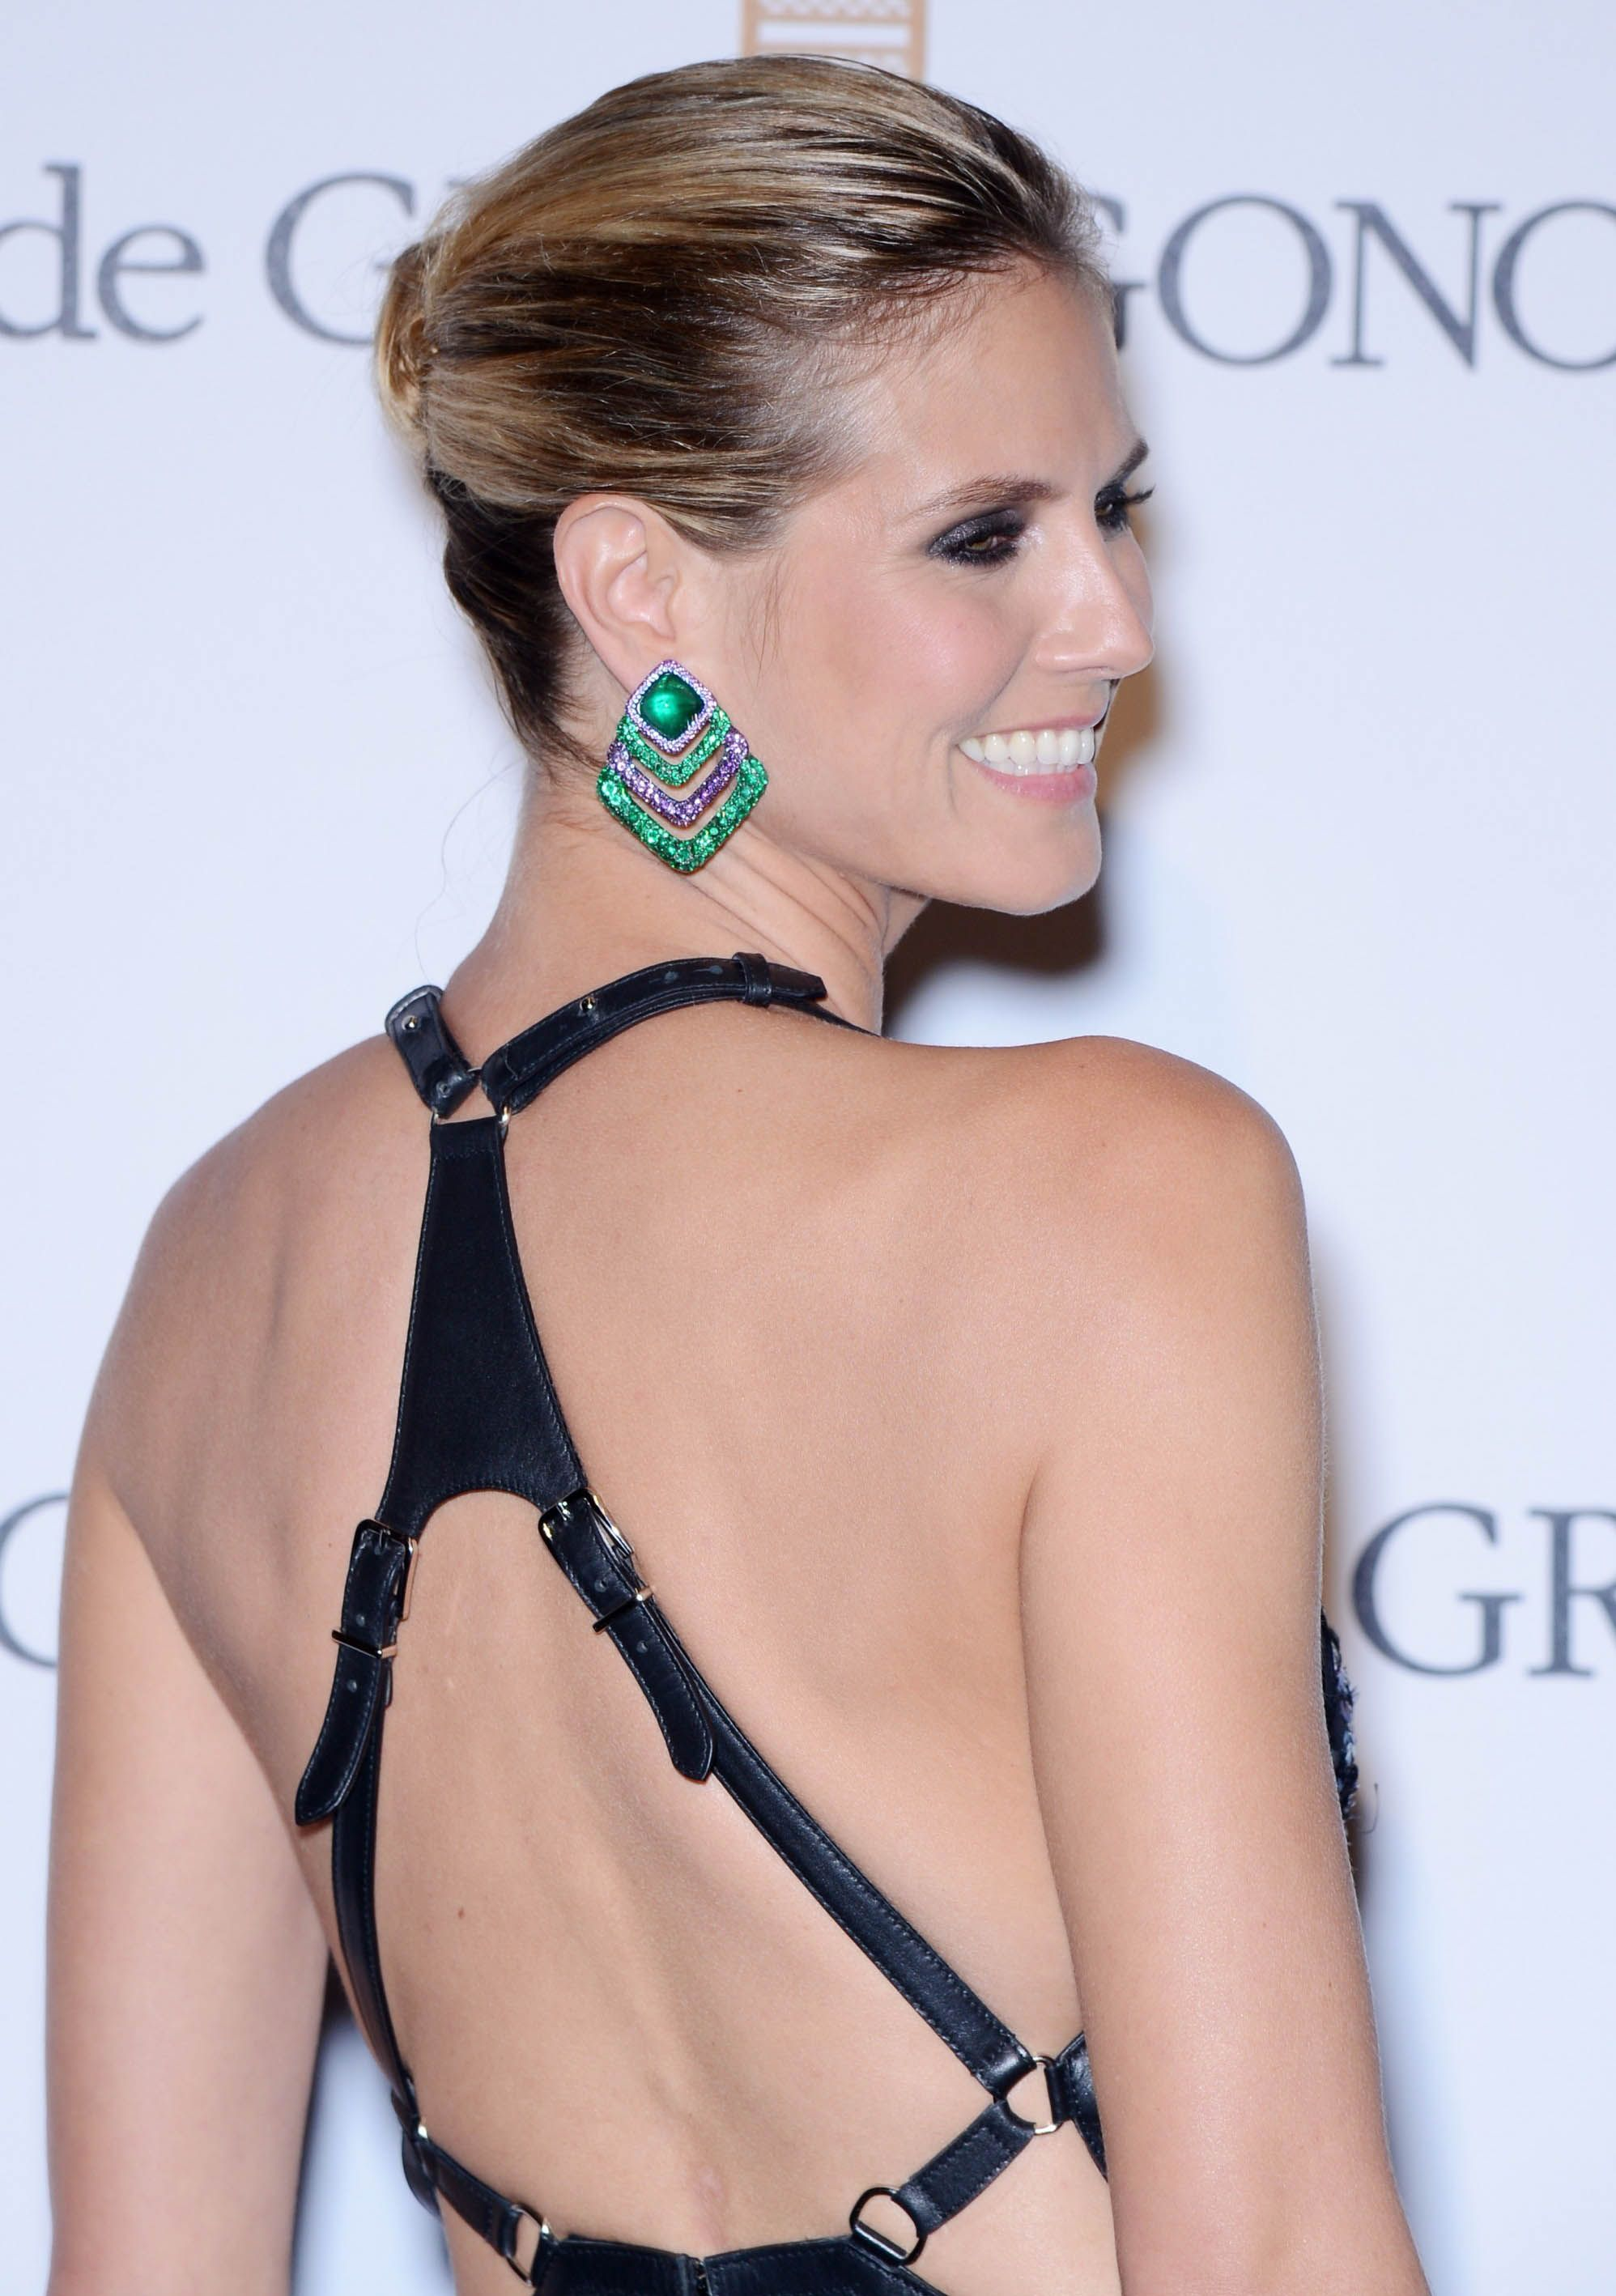 la modella mafia best dressed fashion at Cannes 2012 Film Festival - Heidi Klum 3